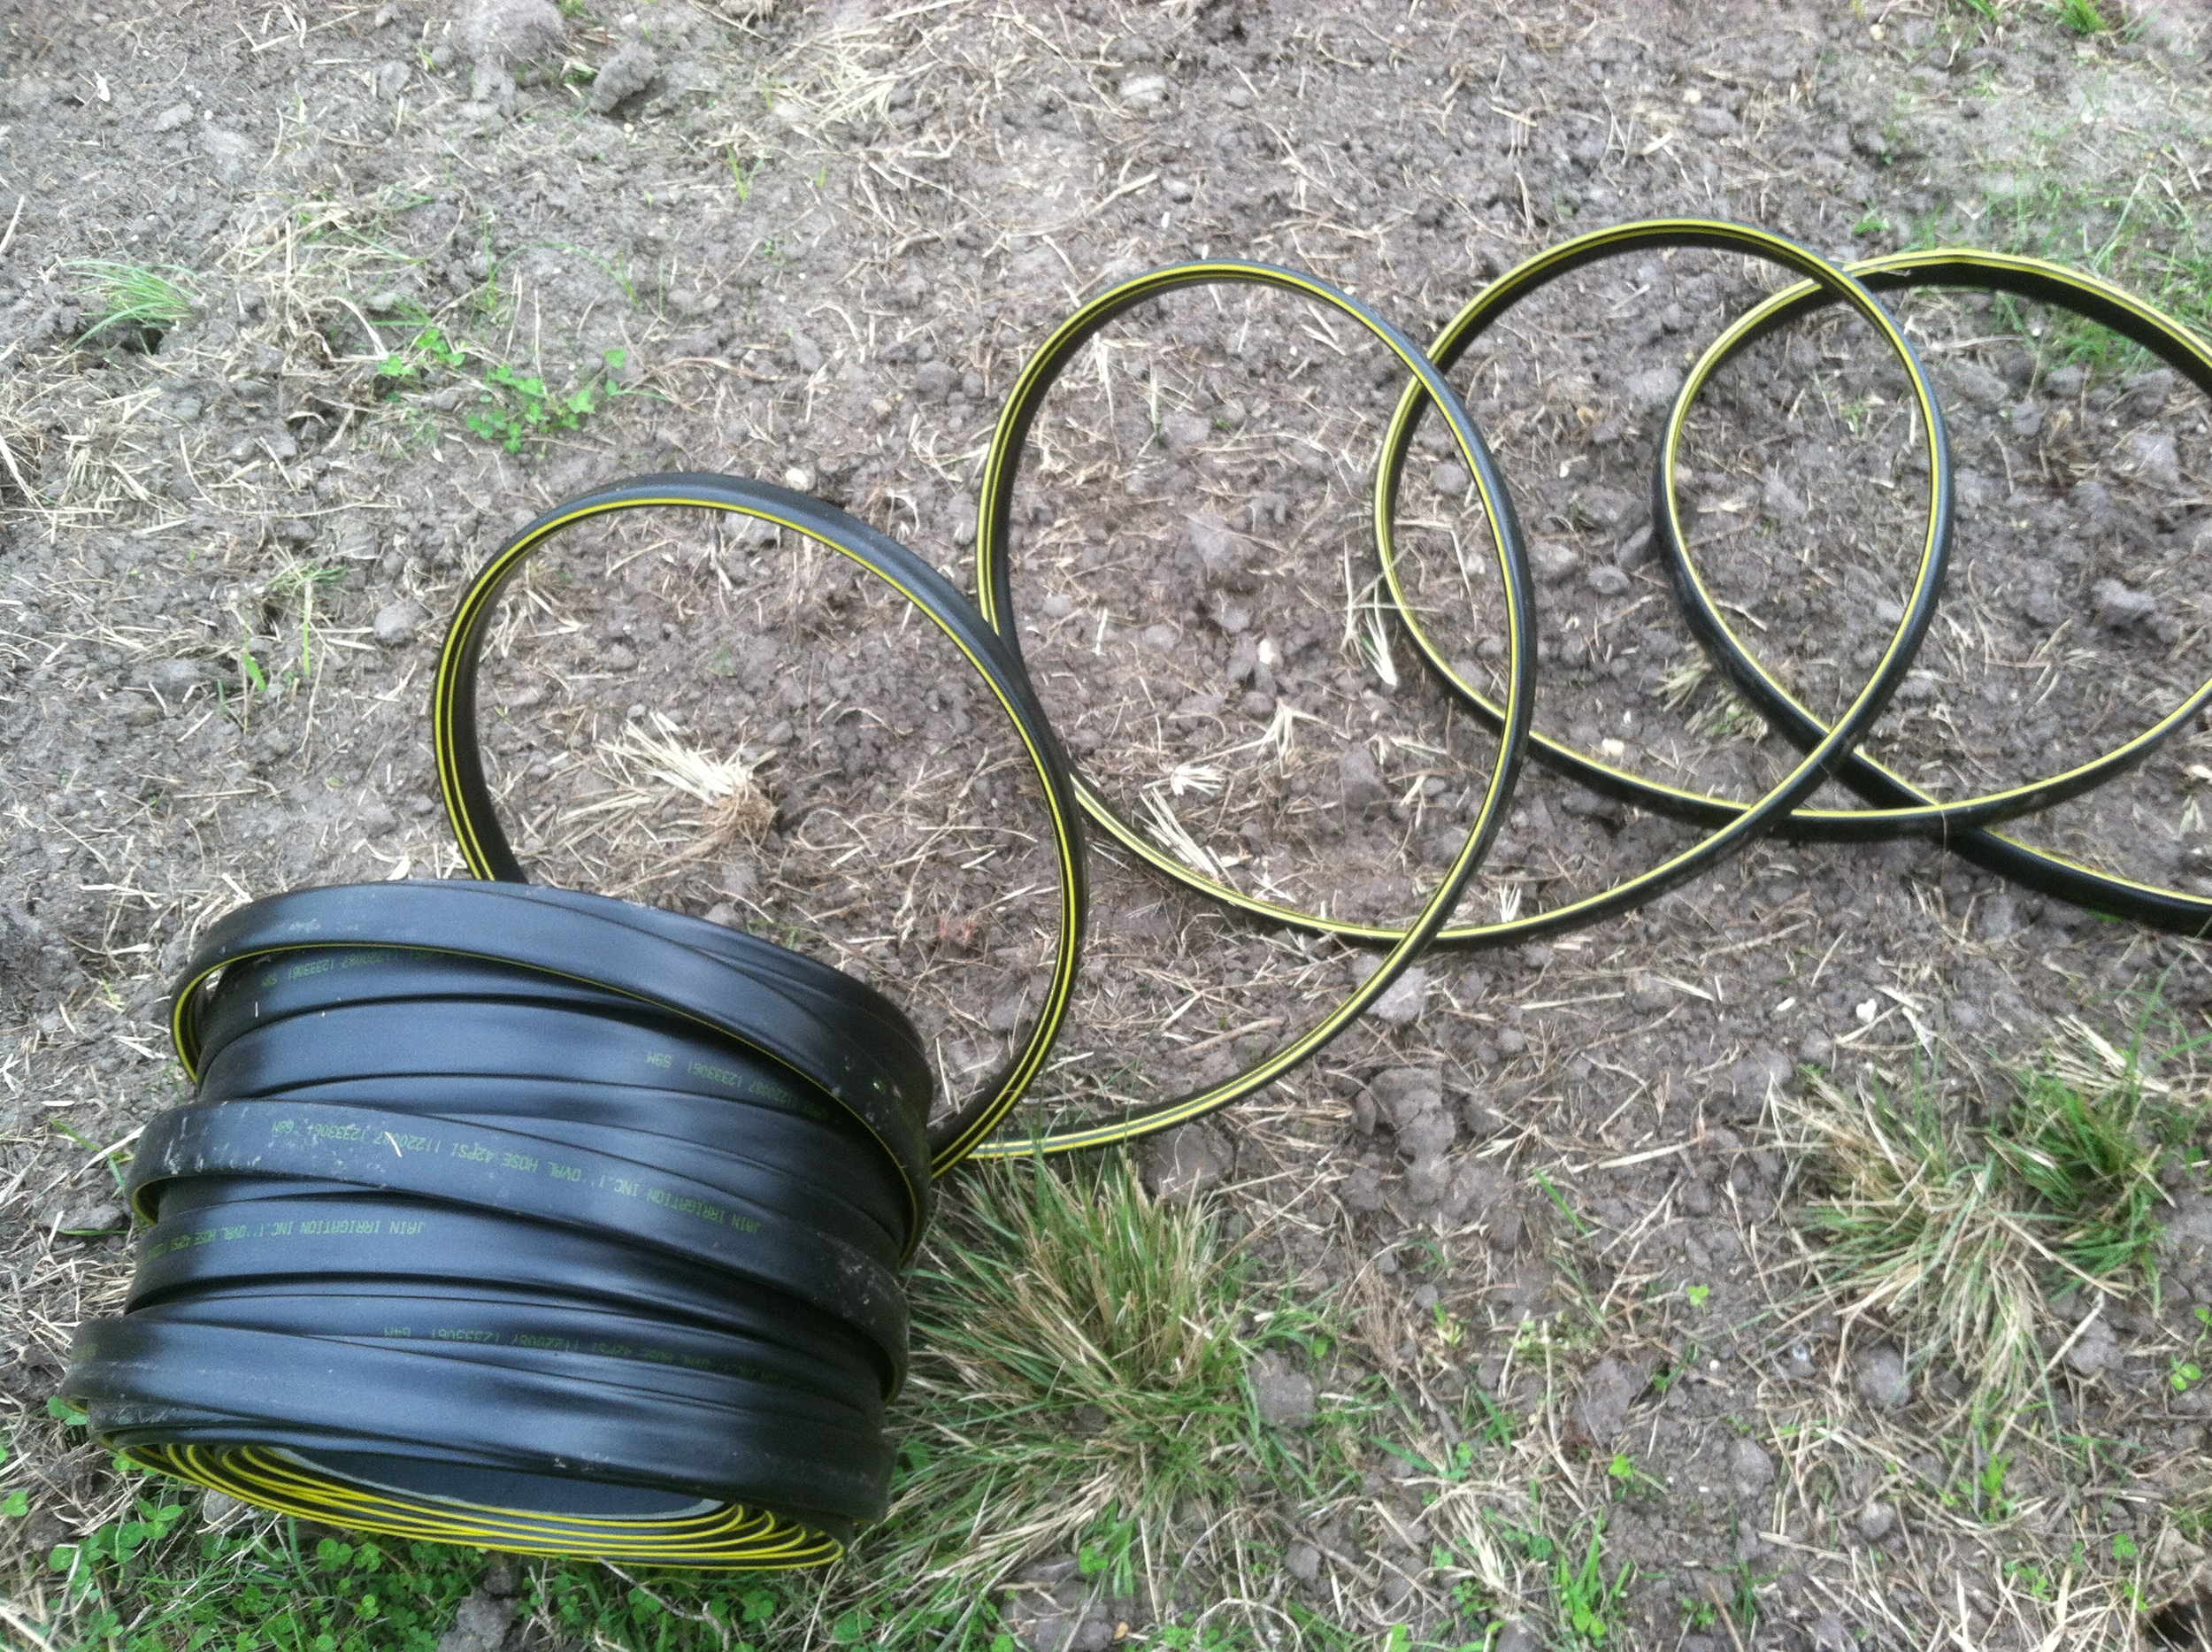 The supply line in all its thick plastic glory.